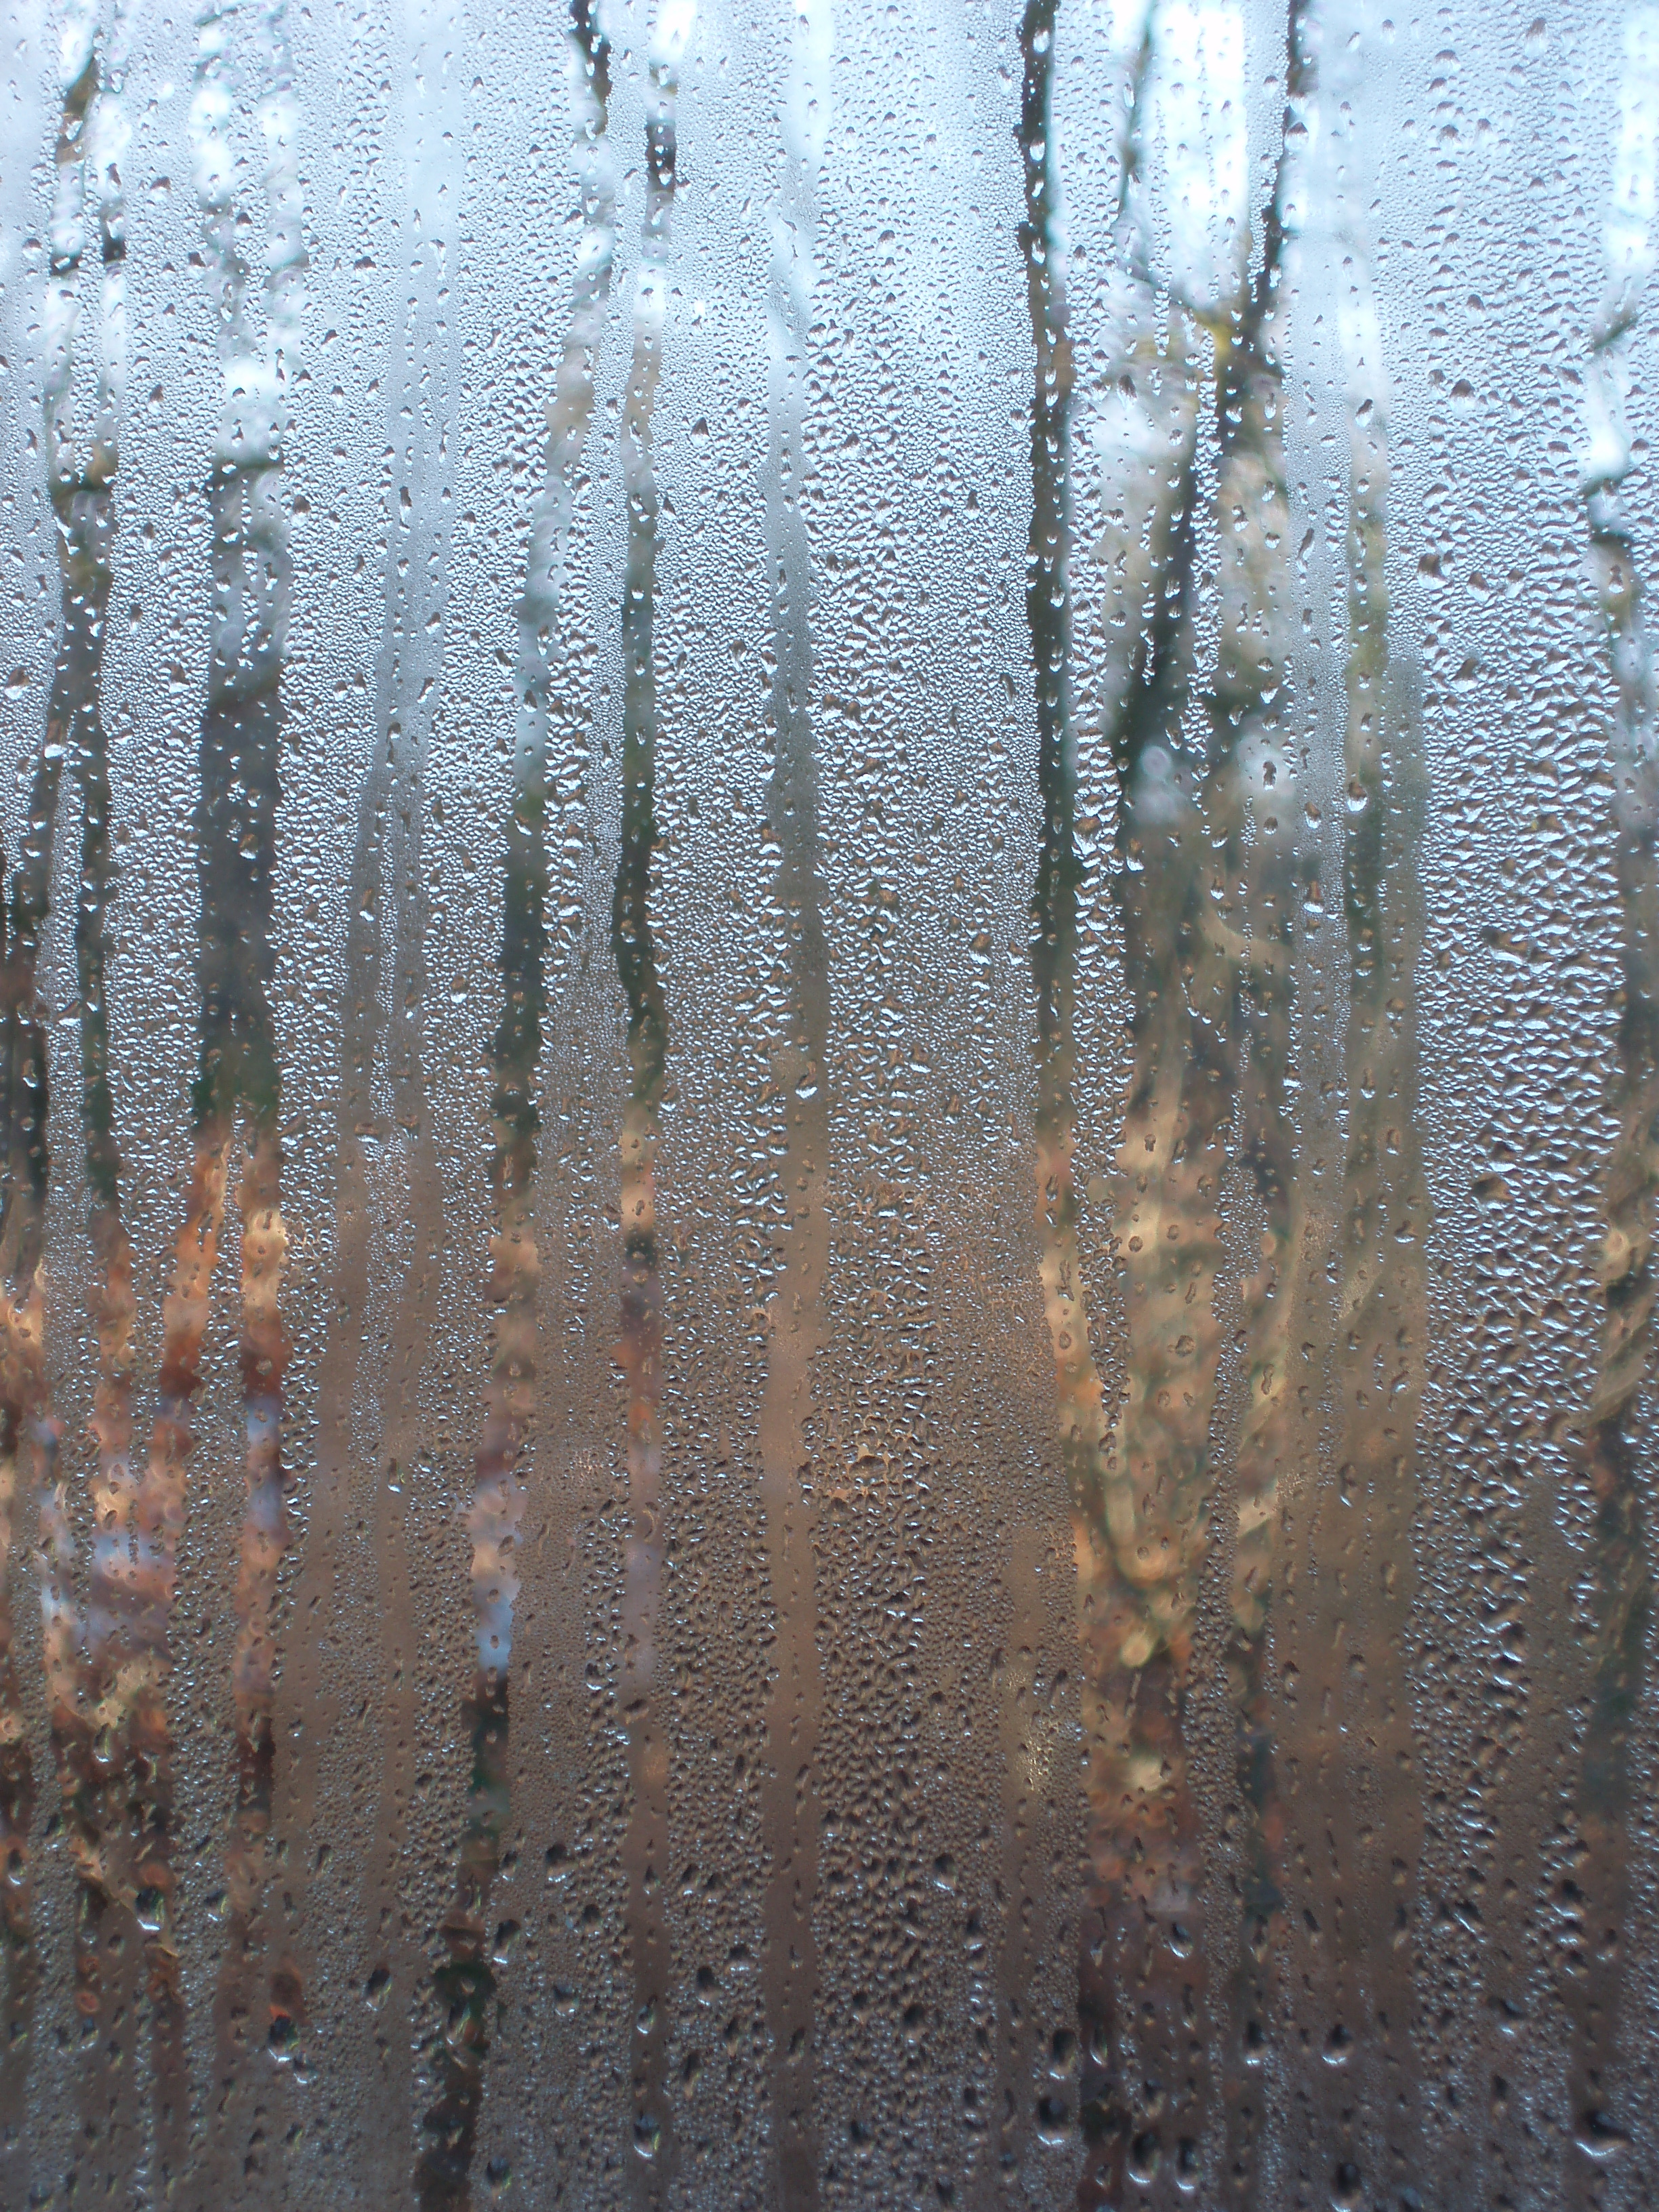 Window Condensation Free Backgrounds And Textures